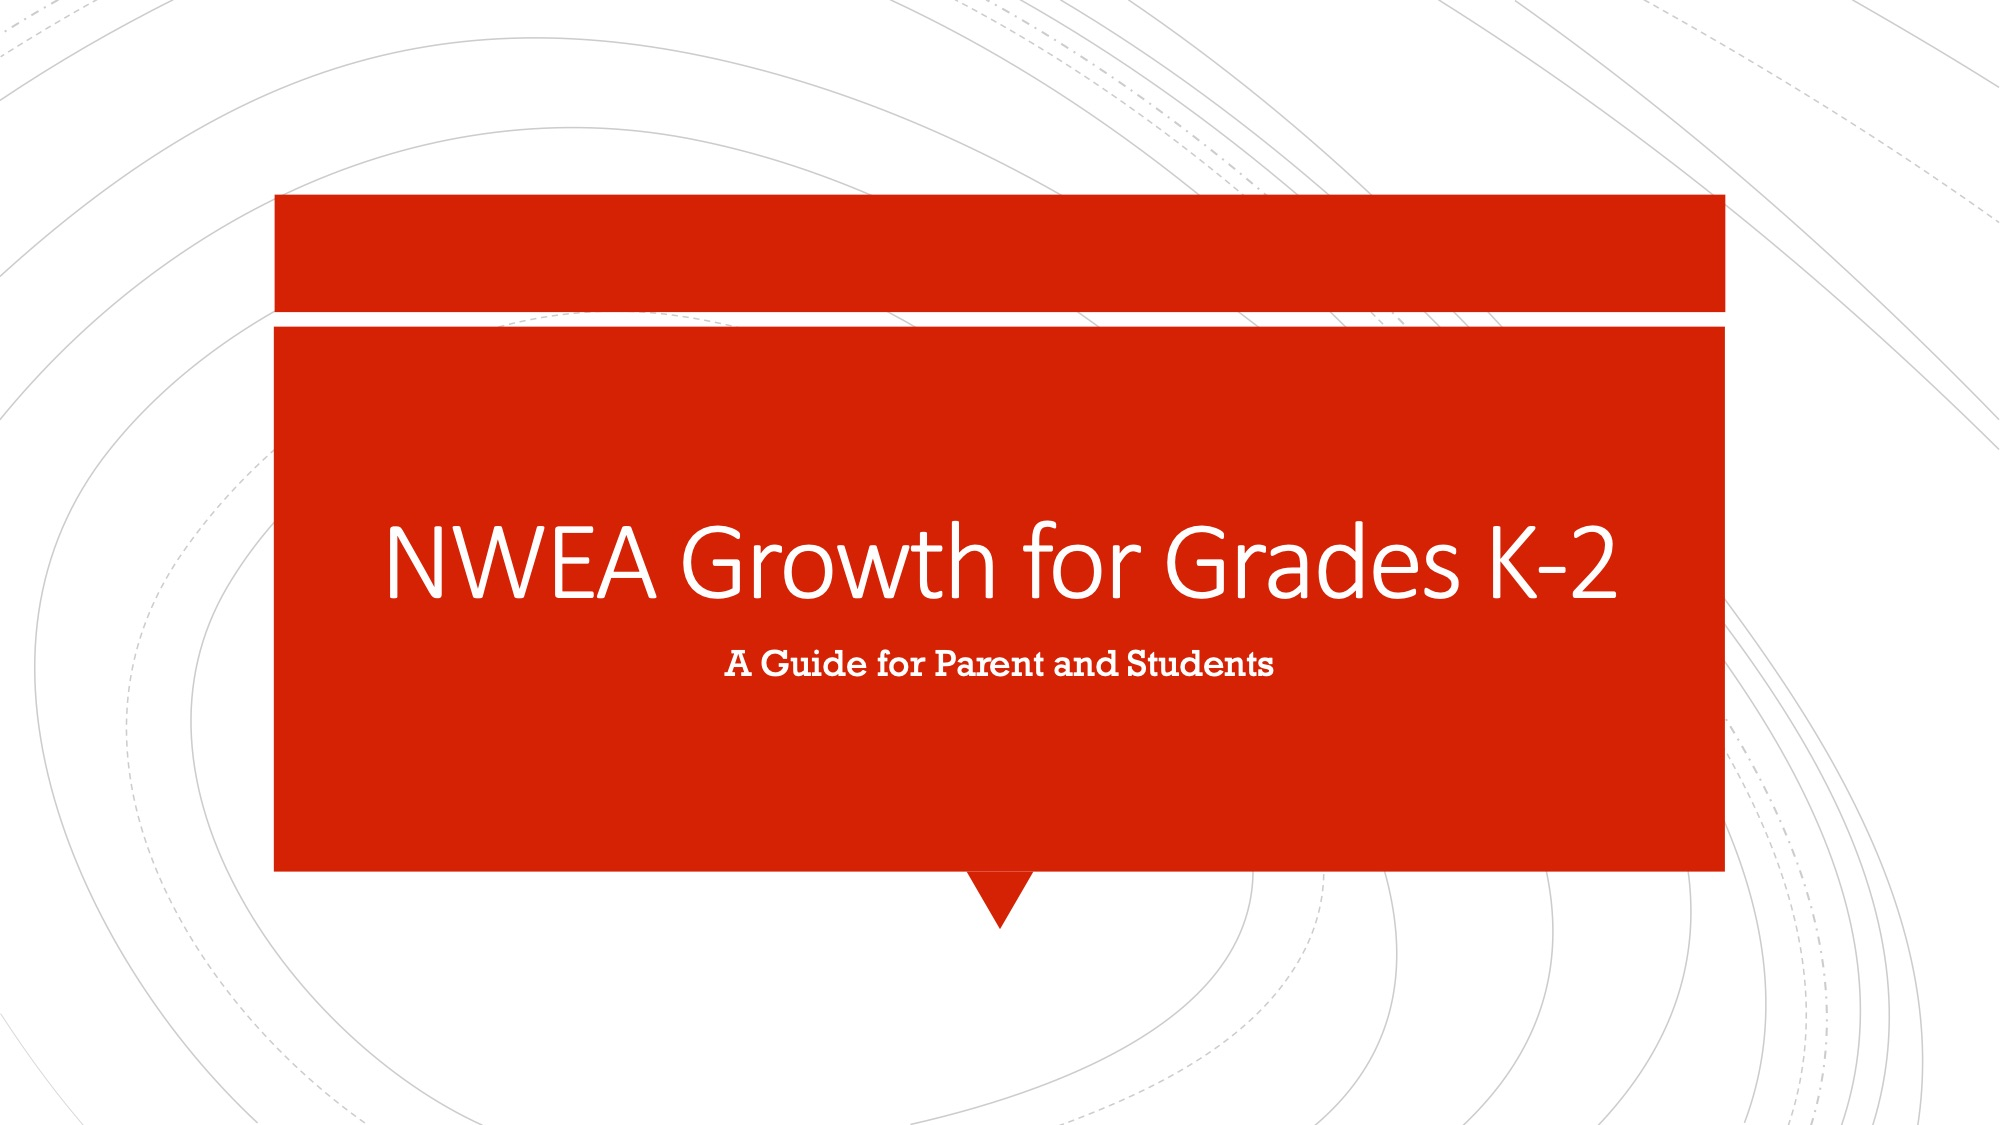 Parent & Student Guide for K-2